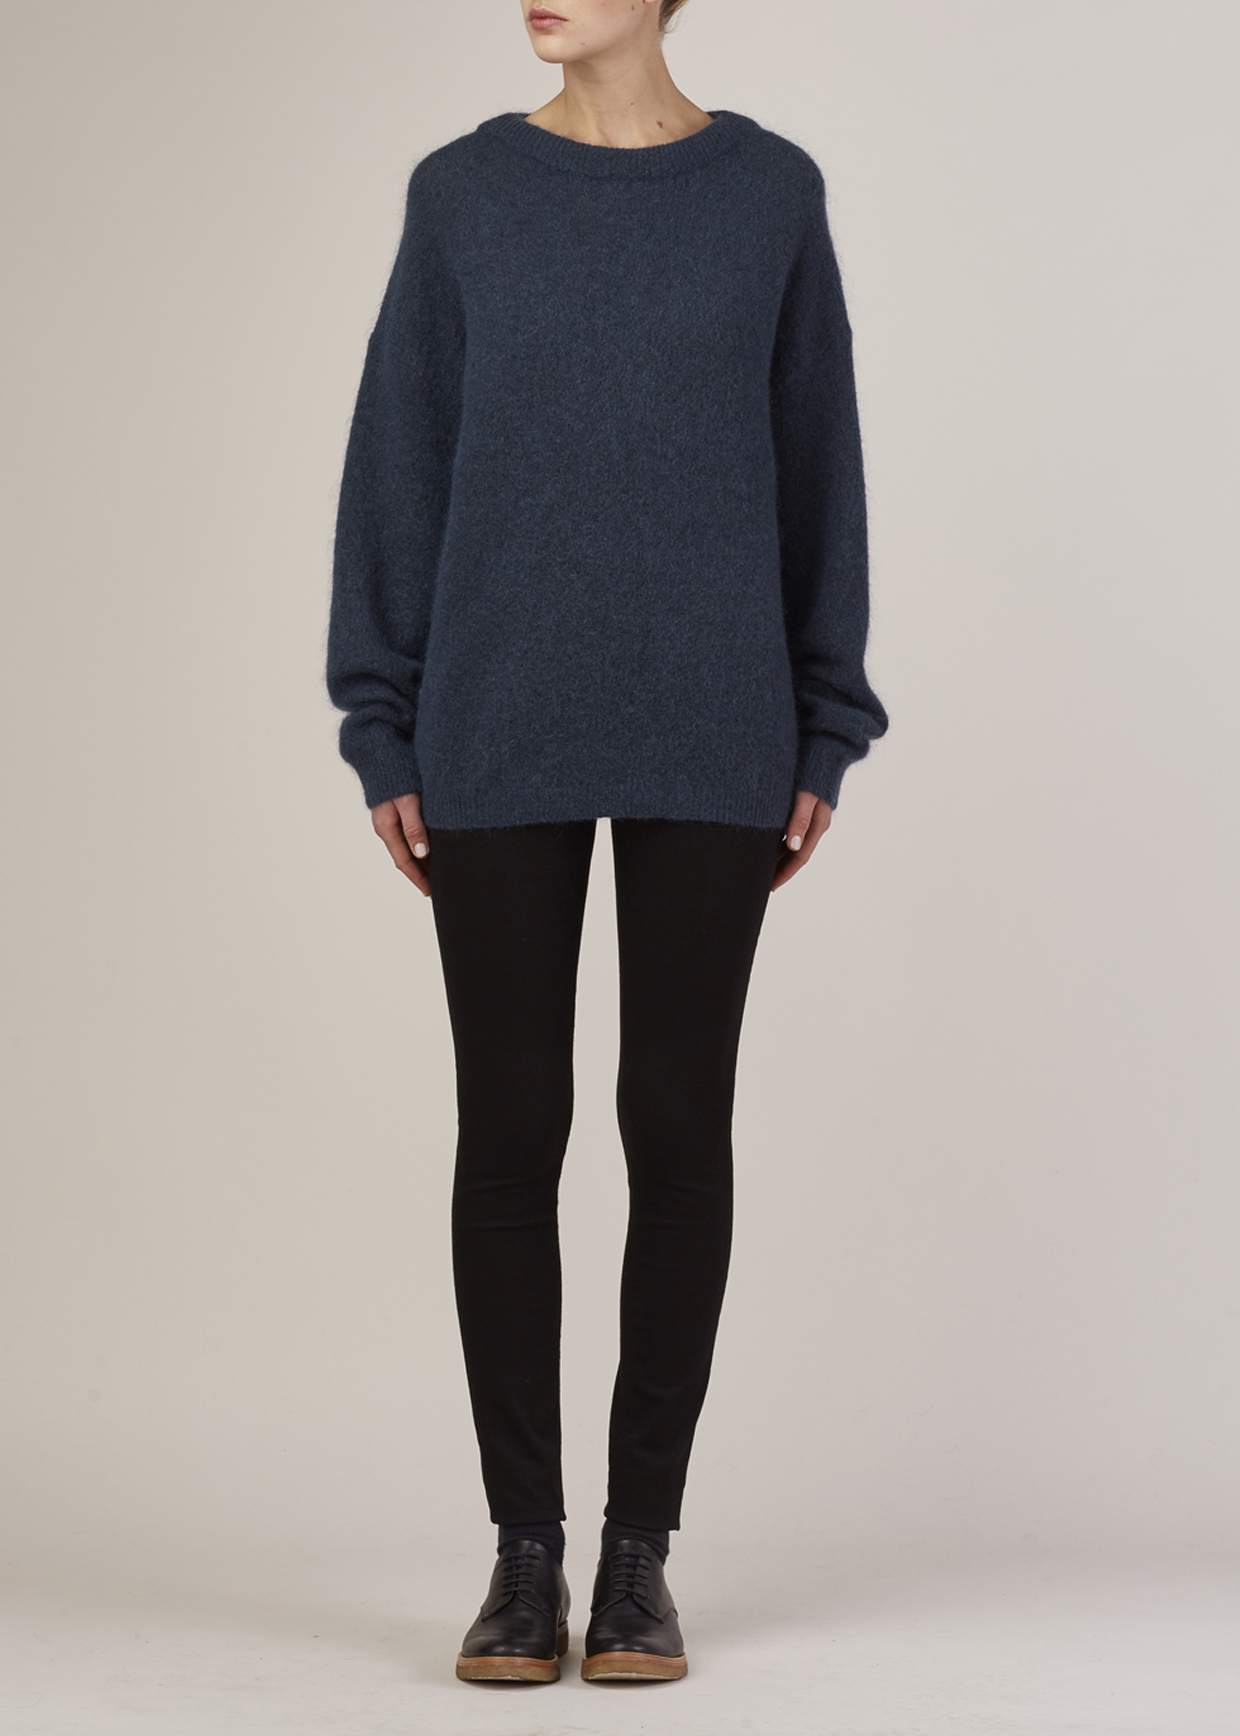 acne studios dusty blue dramatic mohair pullover in blue lyst. Black Bedroom Furniture Sets. Home Design Ideas